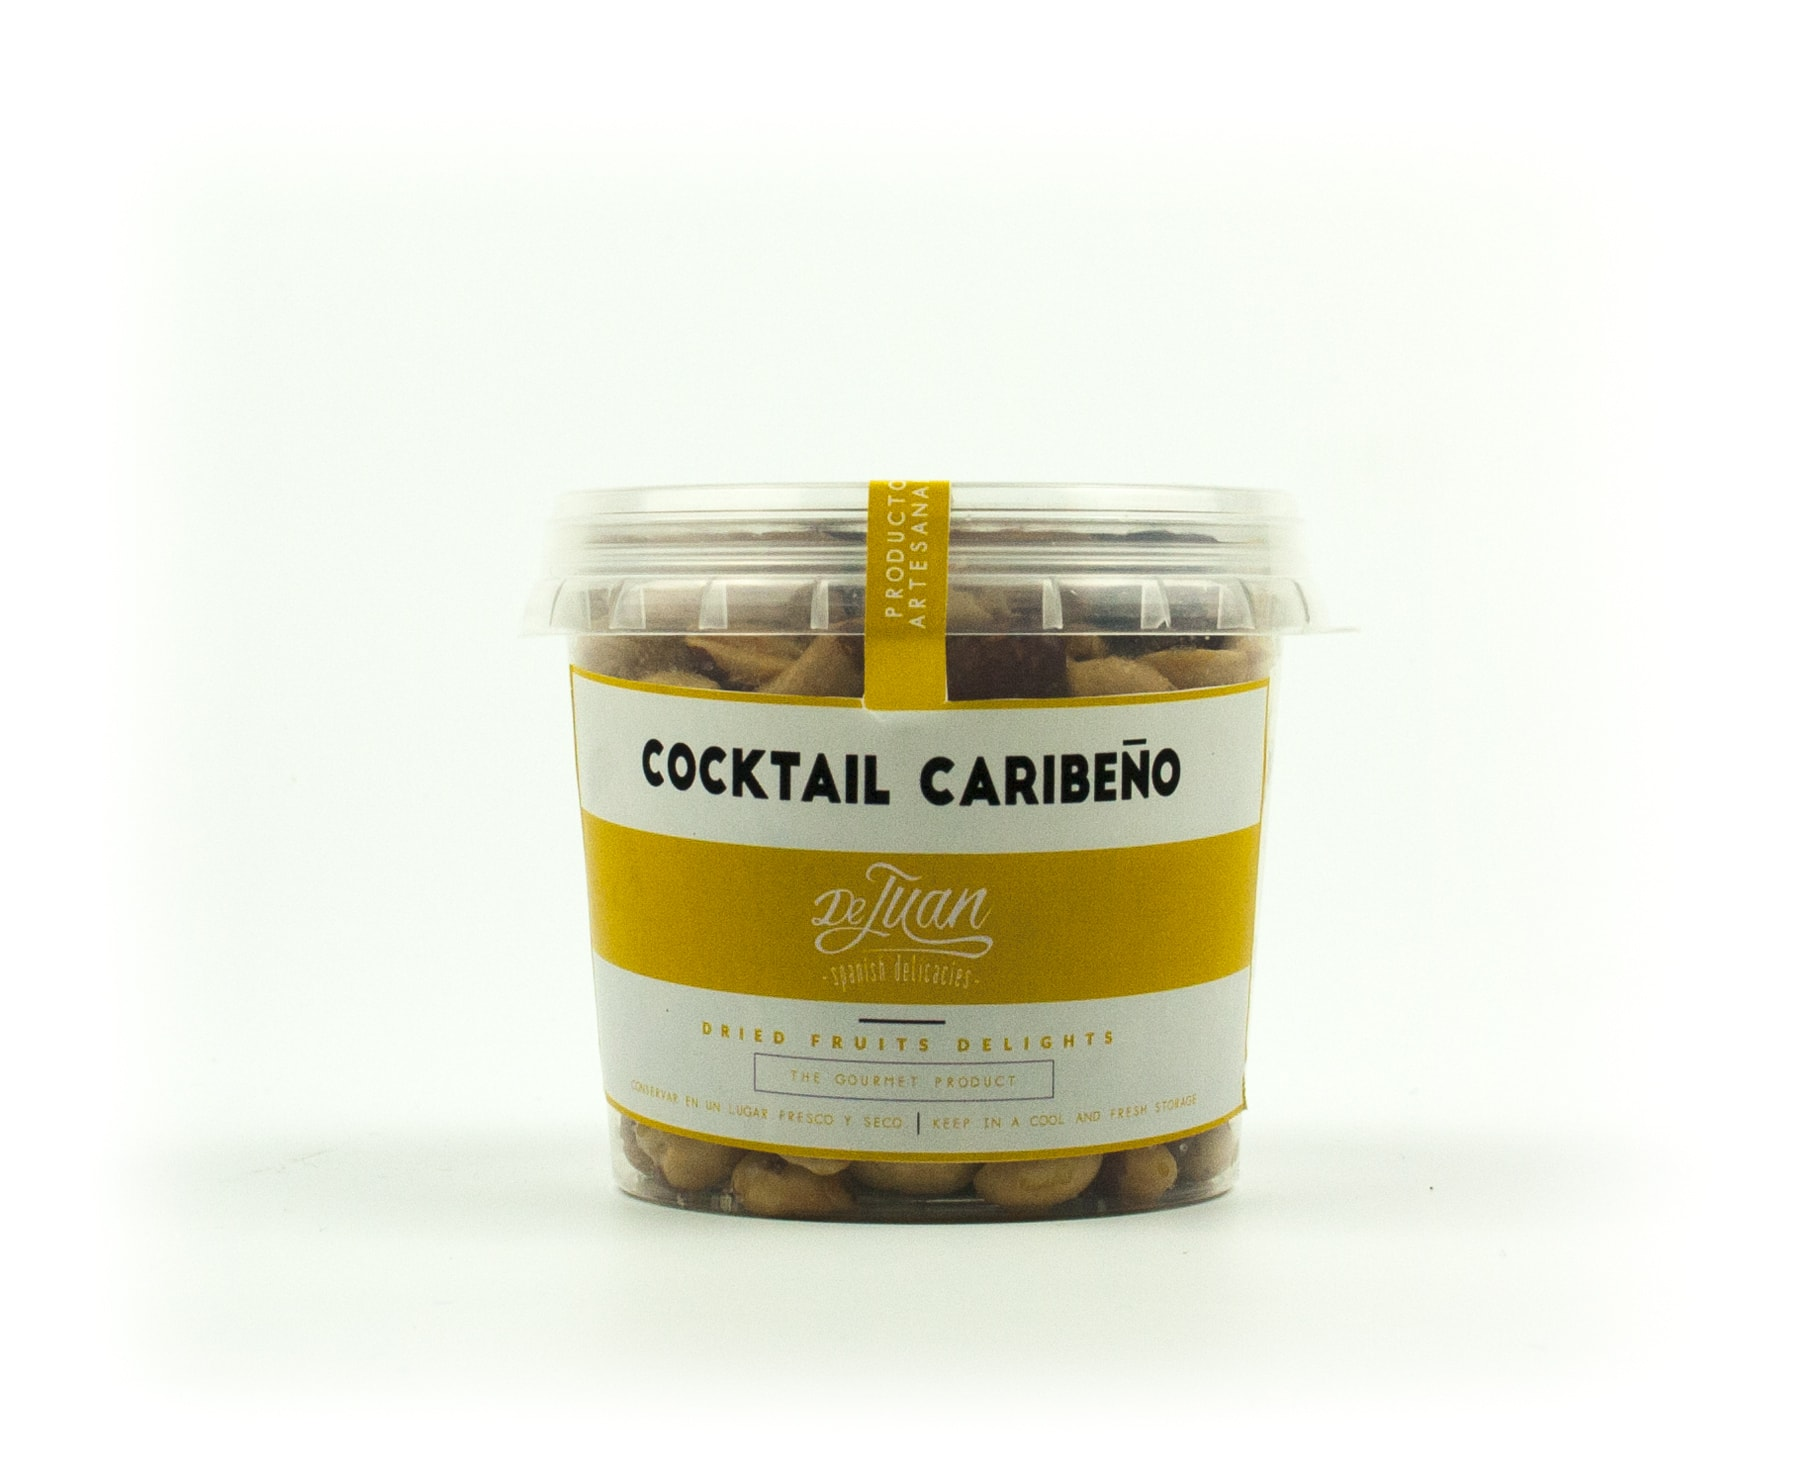 Cocktail Caribeño